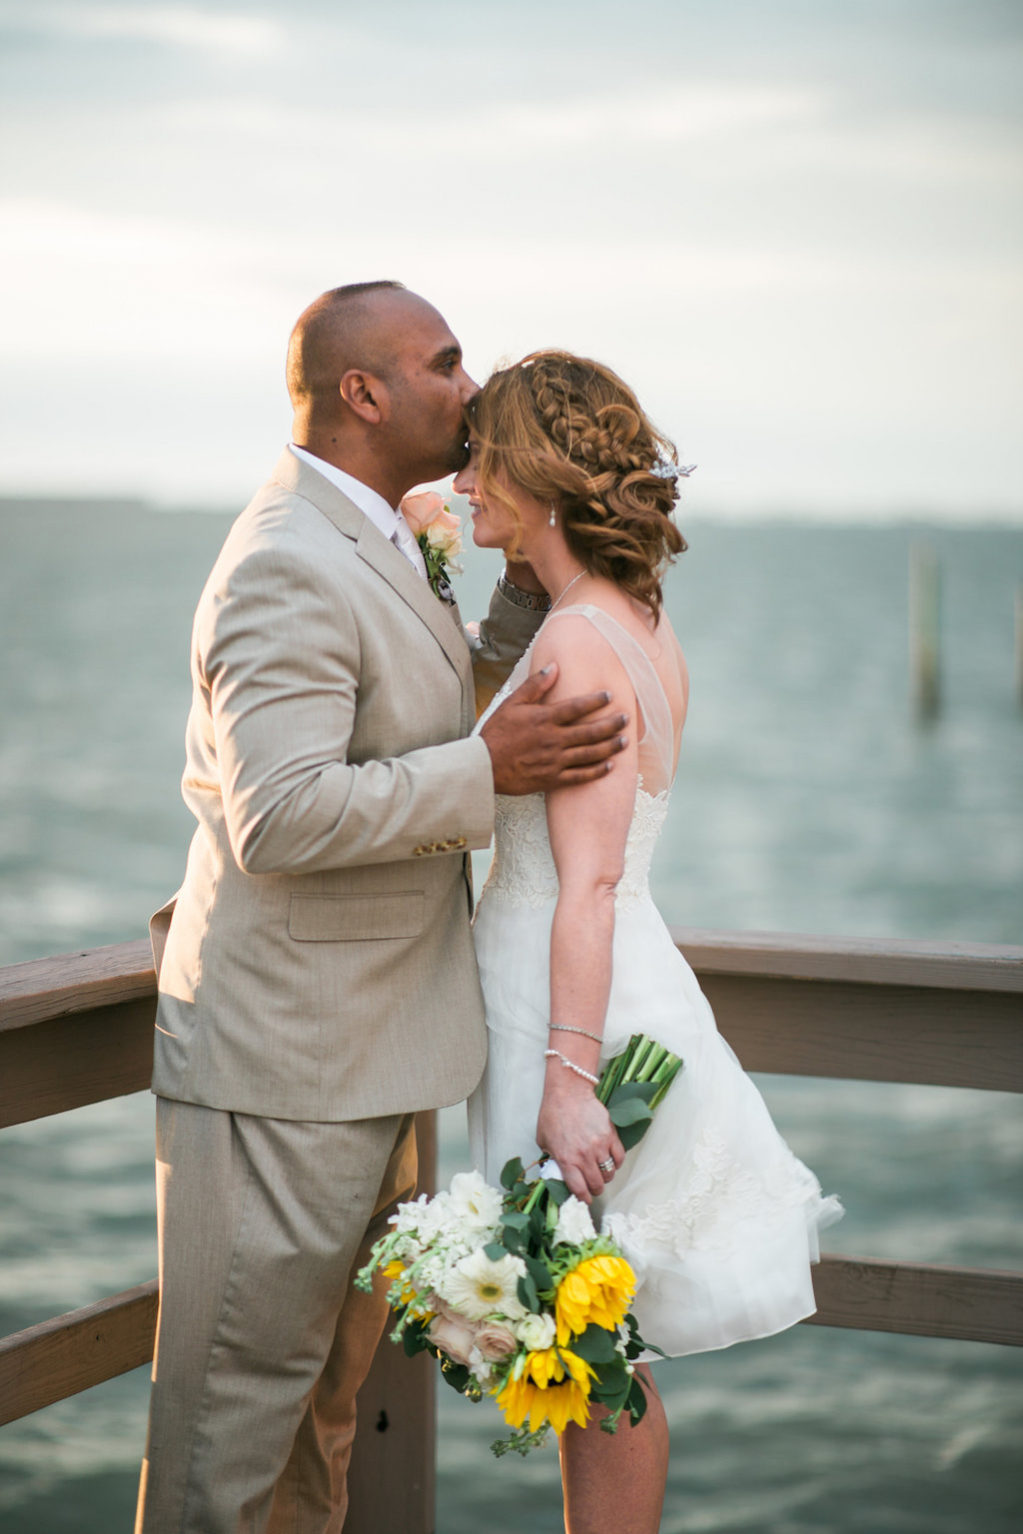 Intimate, Outdoor Waterfront Bride and Groom Wedding Portrait on Dock, Bride wearing White Tank Top Strap Short Reception Wedding Dress with Yellow Sunflower, White Daisy and Greenery Floral Bouquet and Braid, Groom in Tan Suit and Blush Pink Rose Boutonniere | Dunedin Wedding Venue Beso Del Sol Resort